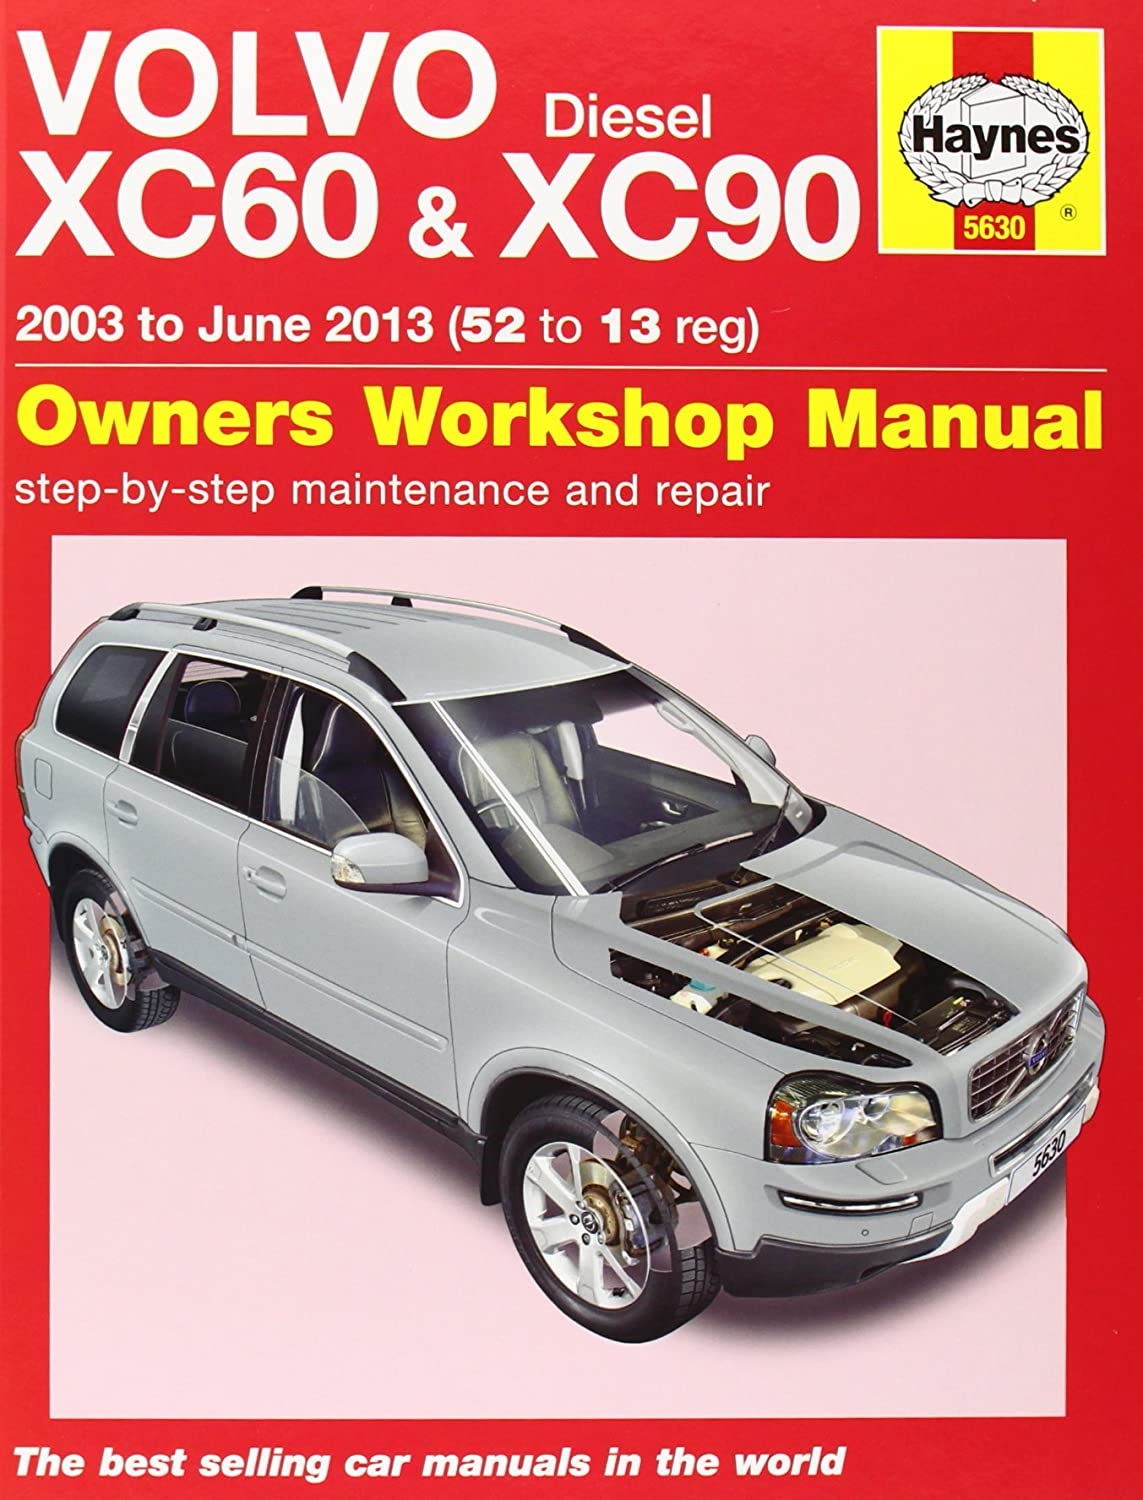 Volvo XC60 & XC90 Diesel Owners Workshop Manual: 2003 - 2013 (Haynes Service  and Repair Manuals): M. R. Storey: Amazon.co.uk: Car & Motorbike